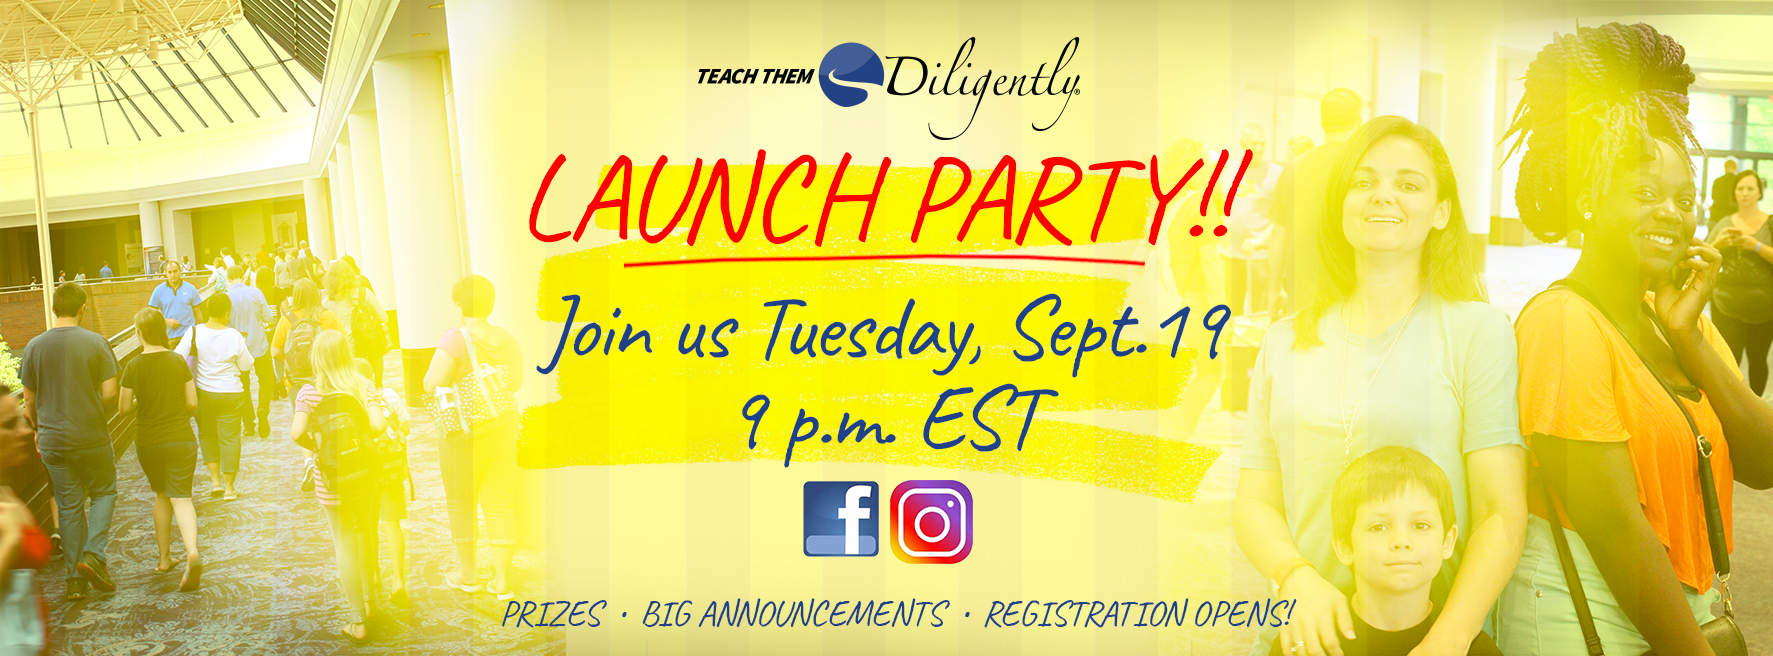 Teach Them Diligently 2018 Launch Party